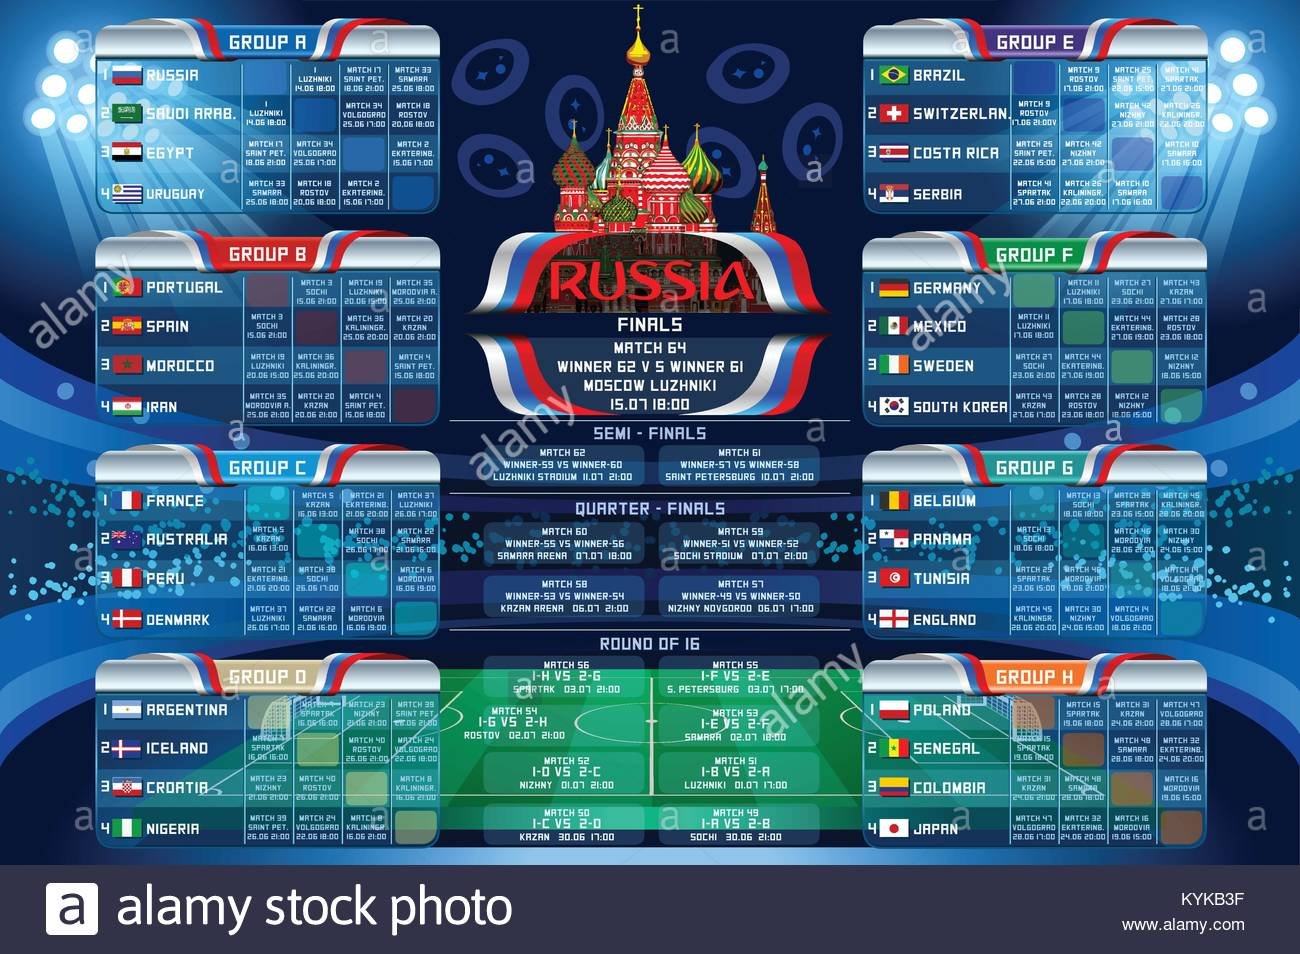 Russia 2018 world cup calendar. Soccer schedule table template